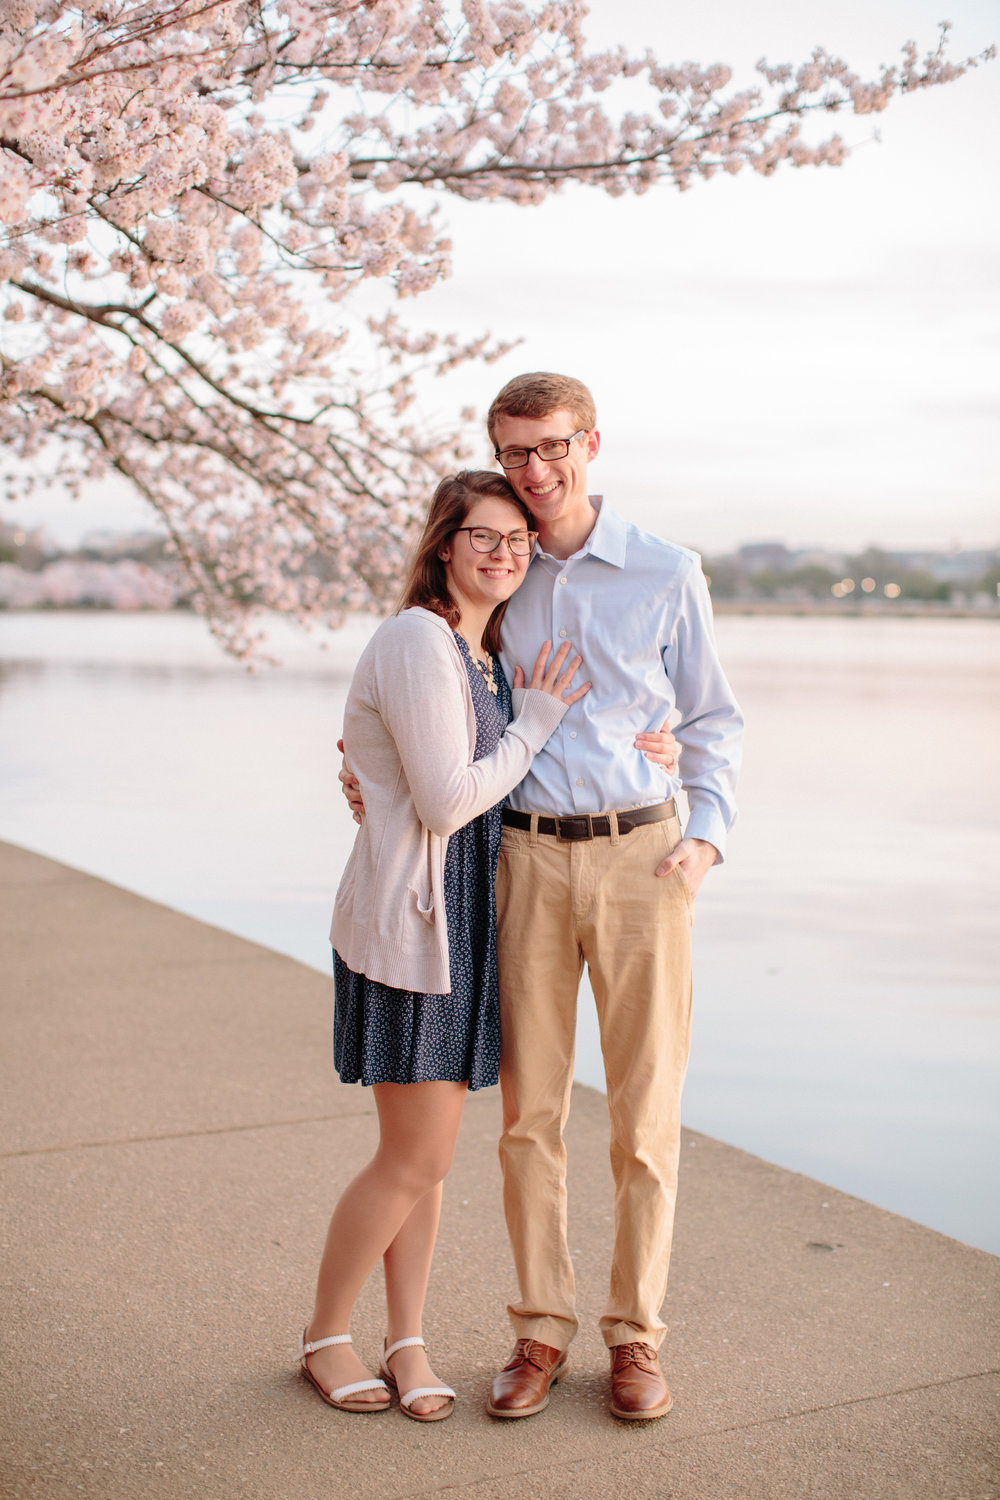 Spring Engagement Session on the Tidal Basin - | Cherry Blossom Engagement Sessions